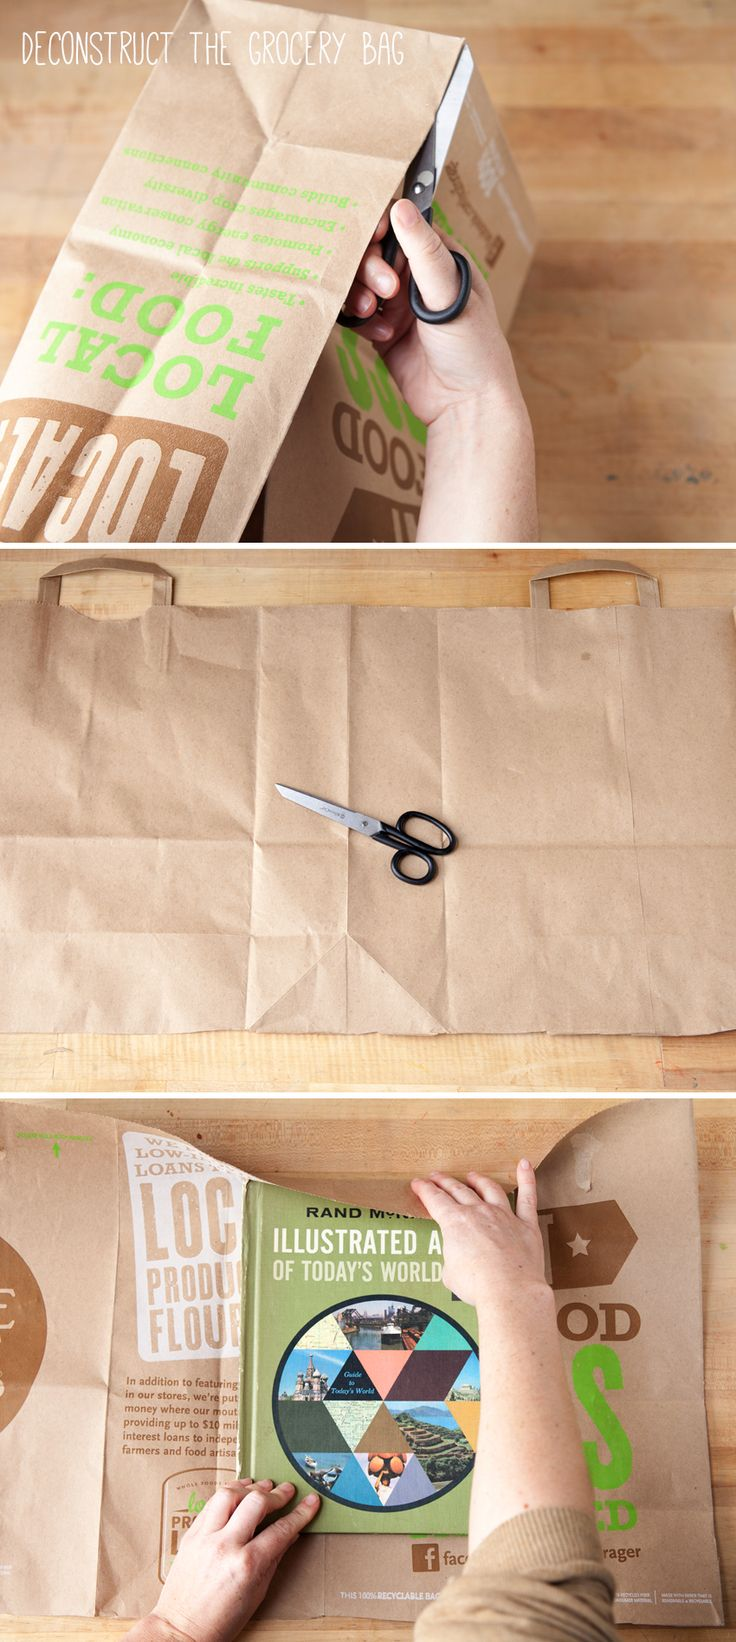 10 creative diy book cover ideas - Make A Book Cover Out Of A Grocery Bag Backtoschool Diy Upcycle